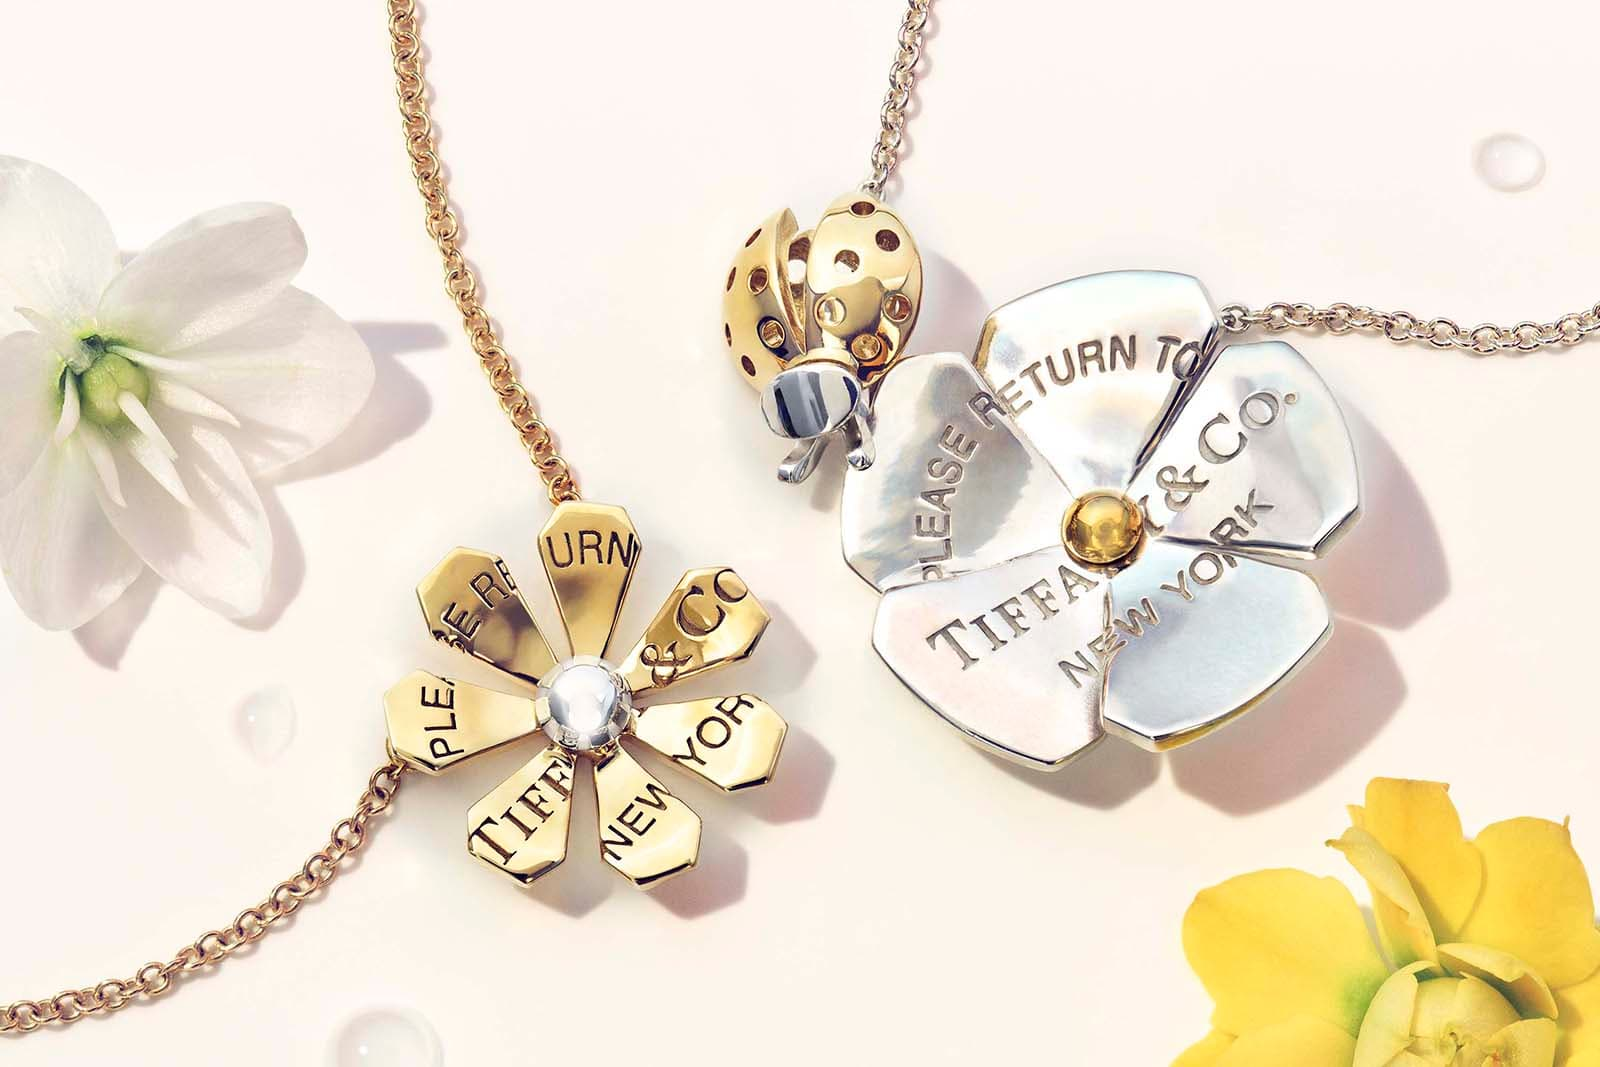 Tiffany&Co. 'Return to Tiffany Love Bugs' collection in yellow and white gold and silver